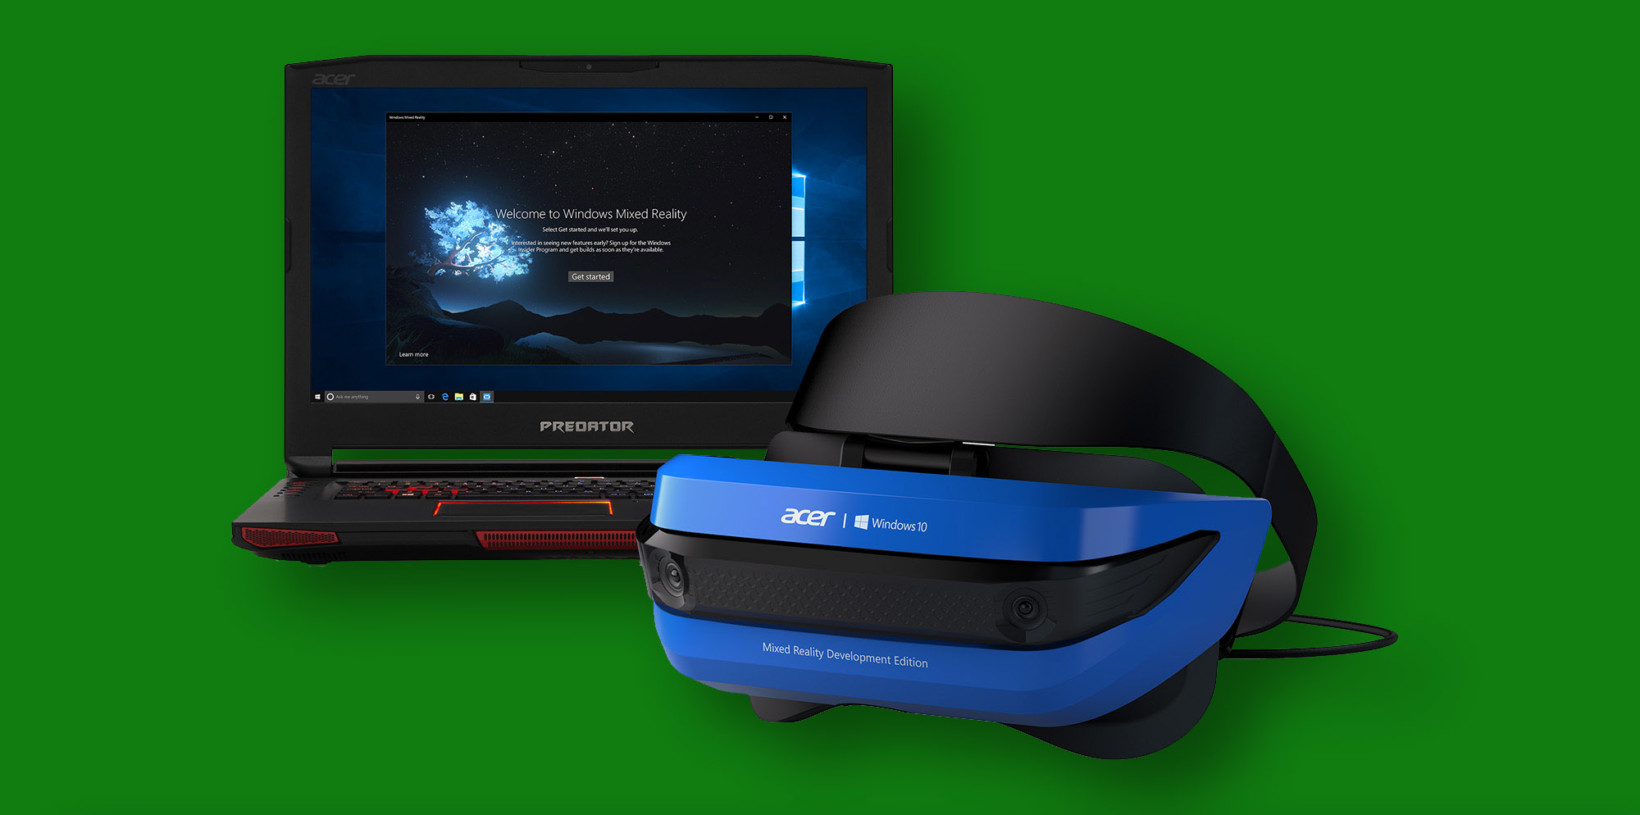 Microsoft announces mixed reality coming to Xbox One and Project Scorpio in 2018